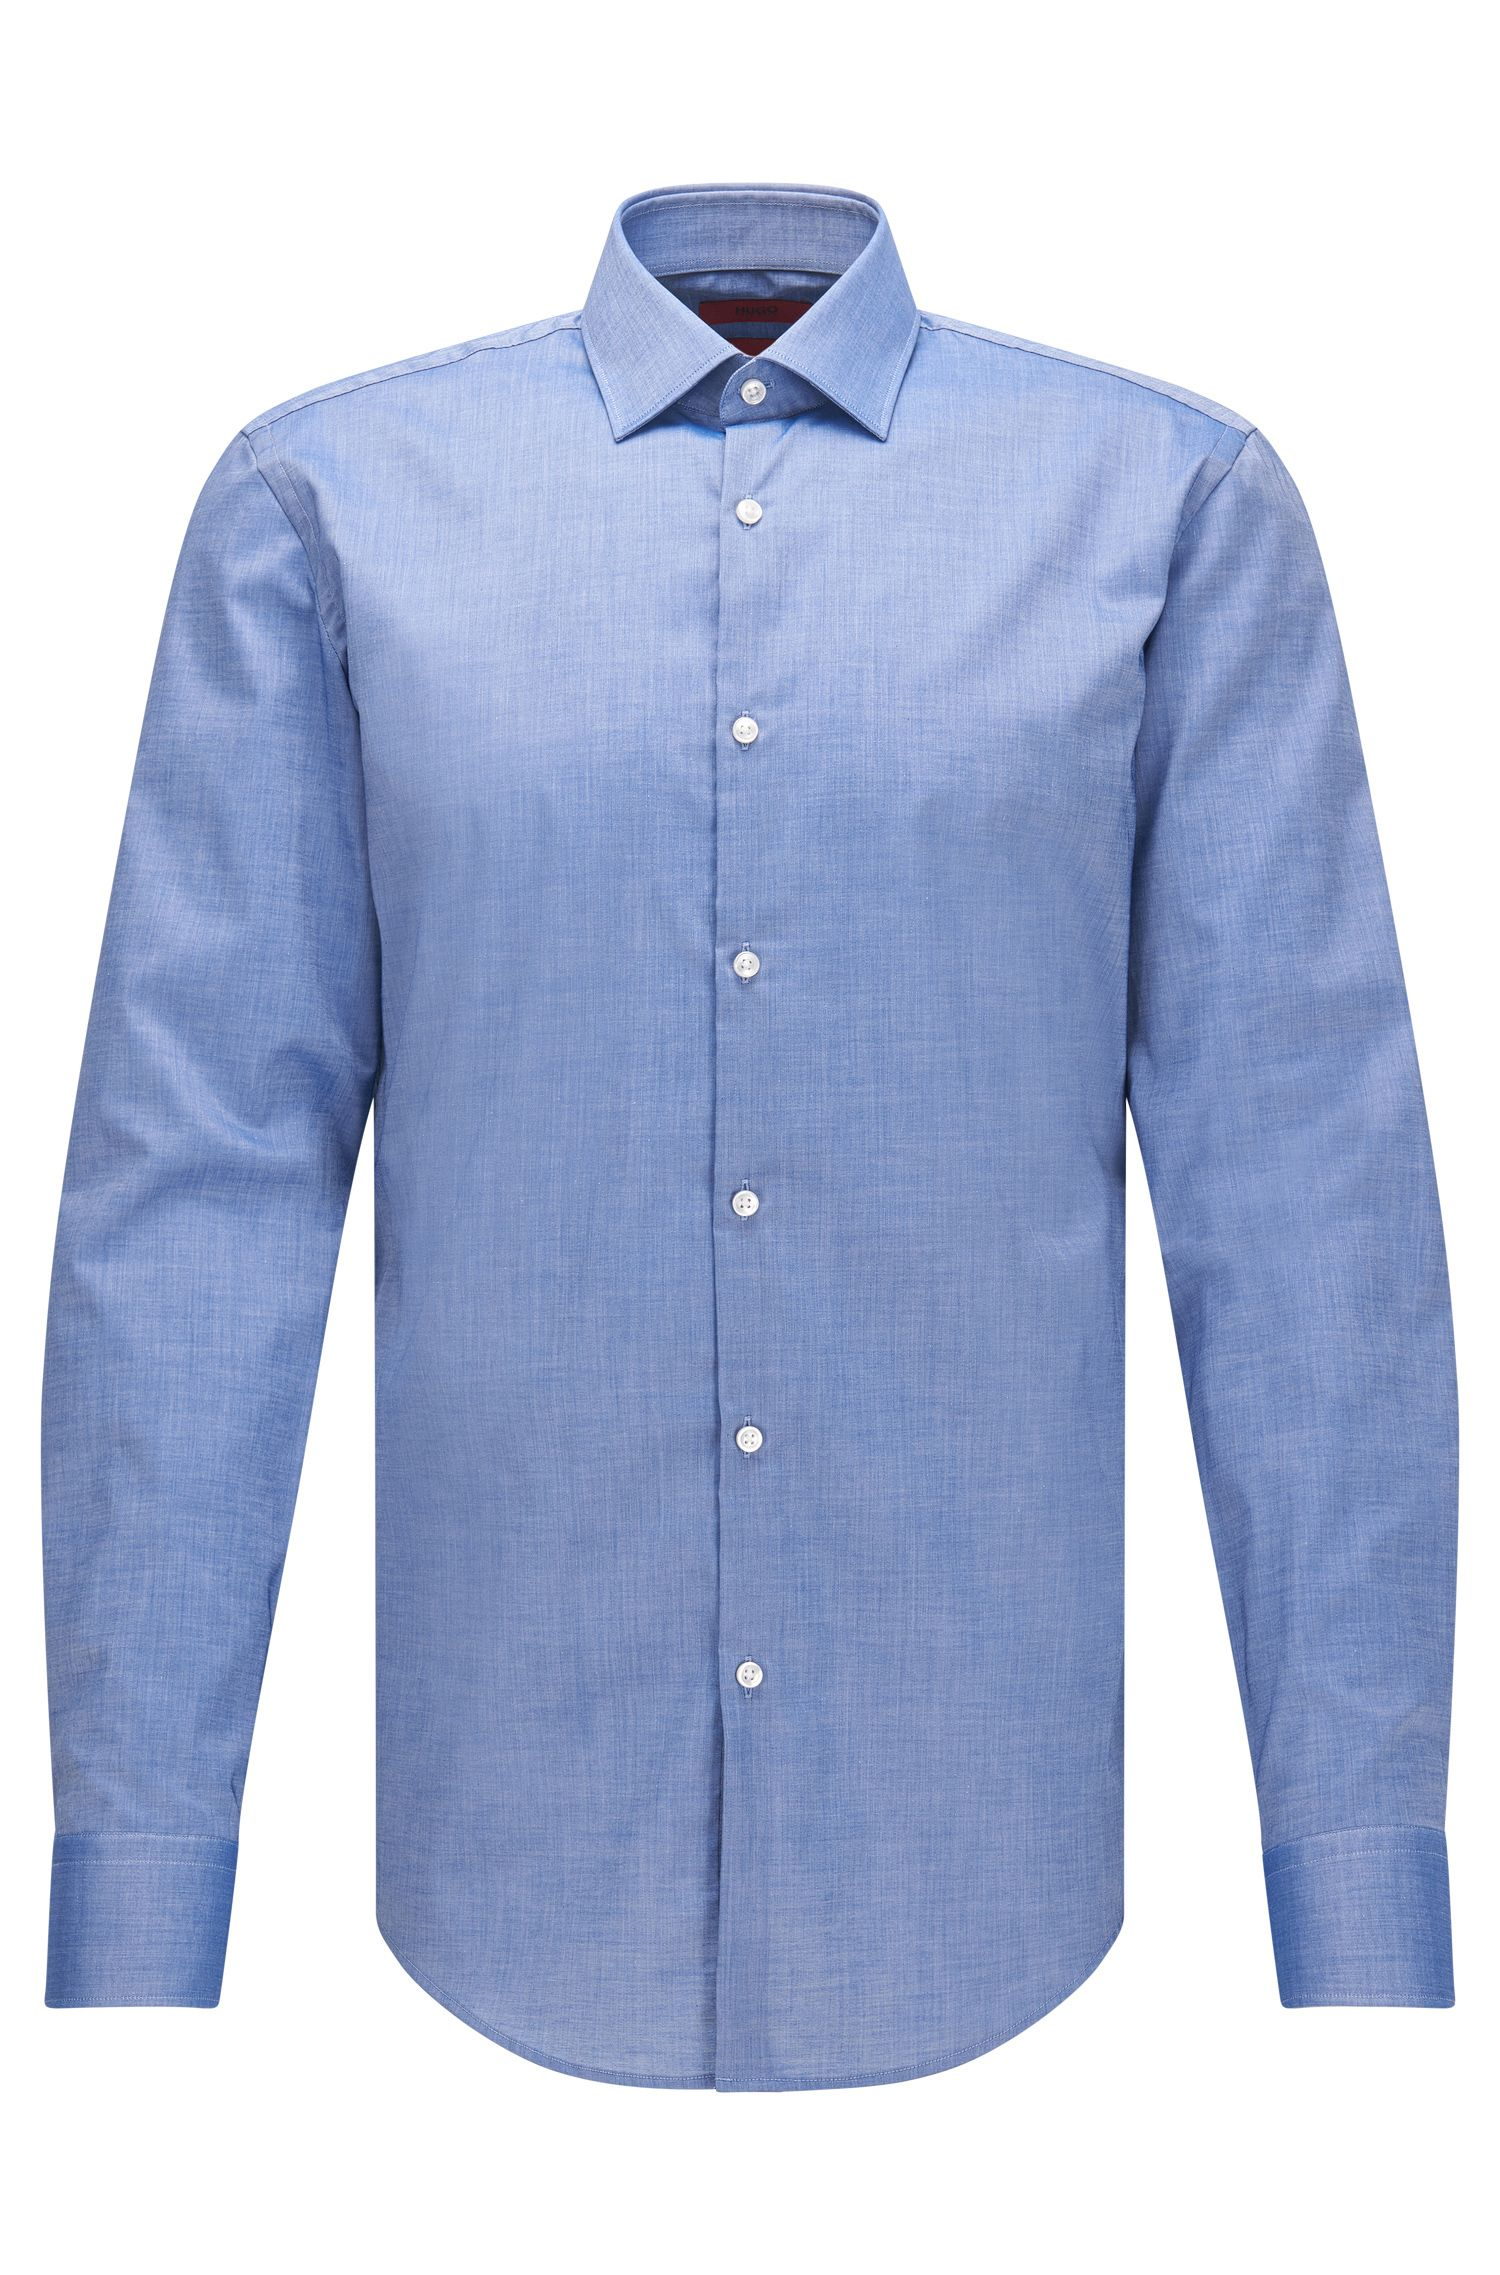 Slim-fit cotton shirt with squared cuffs